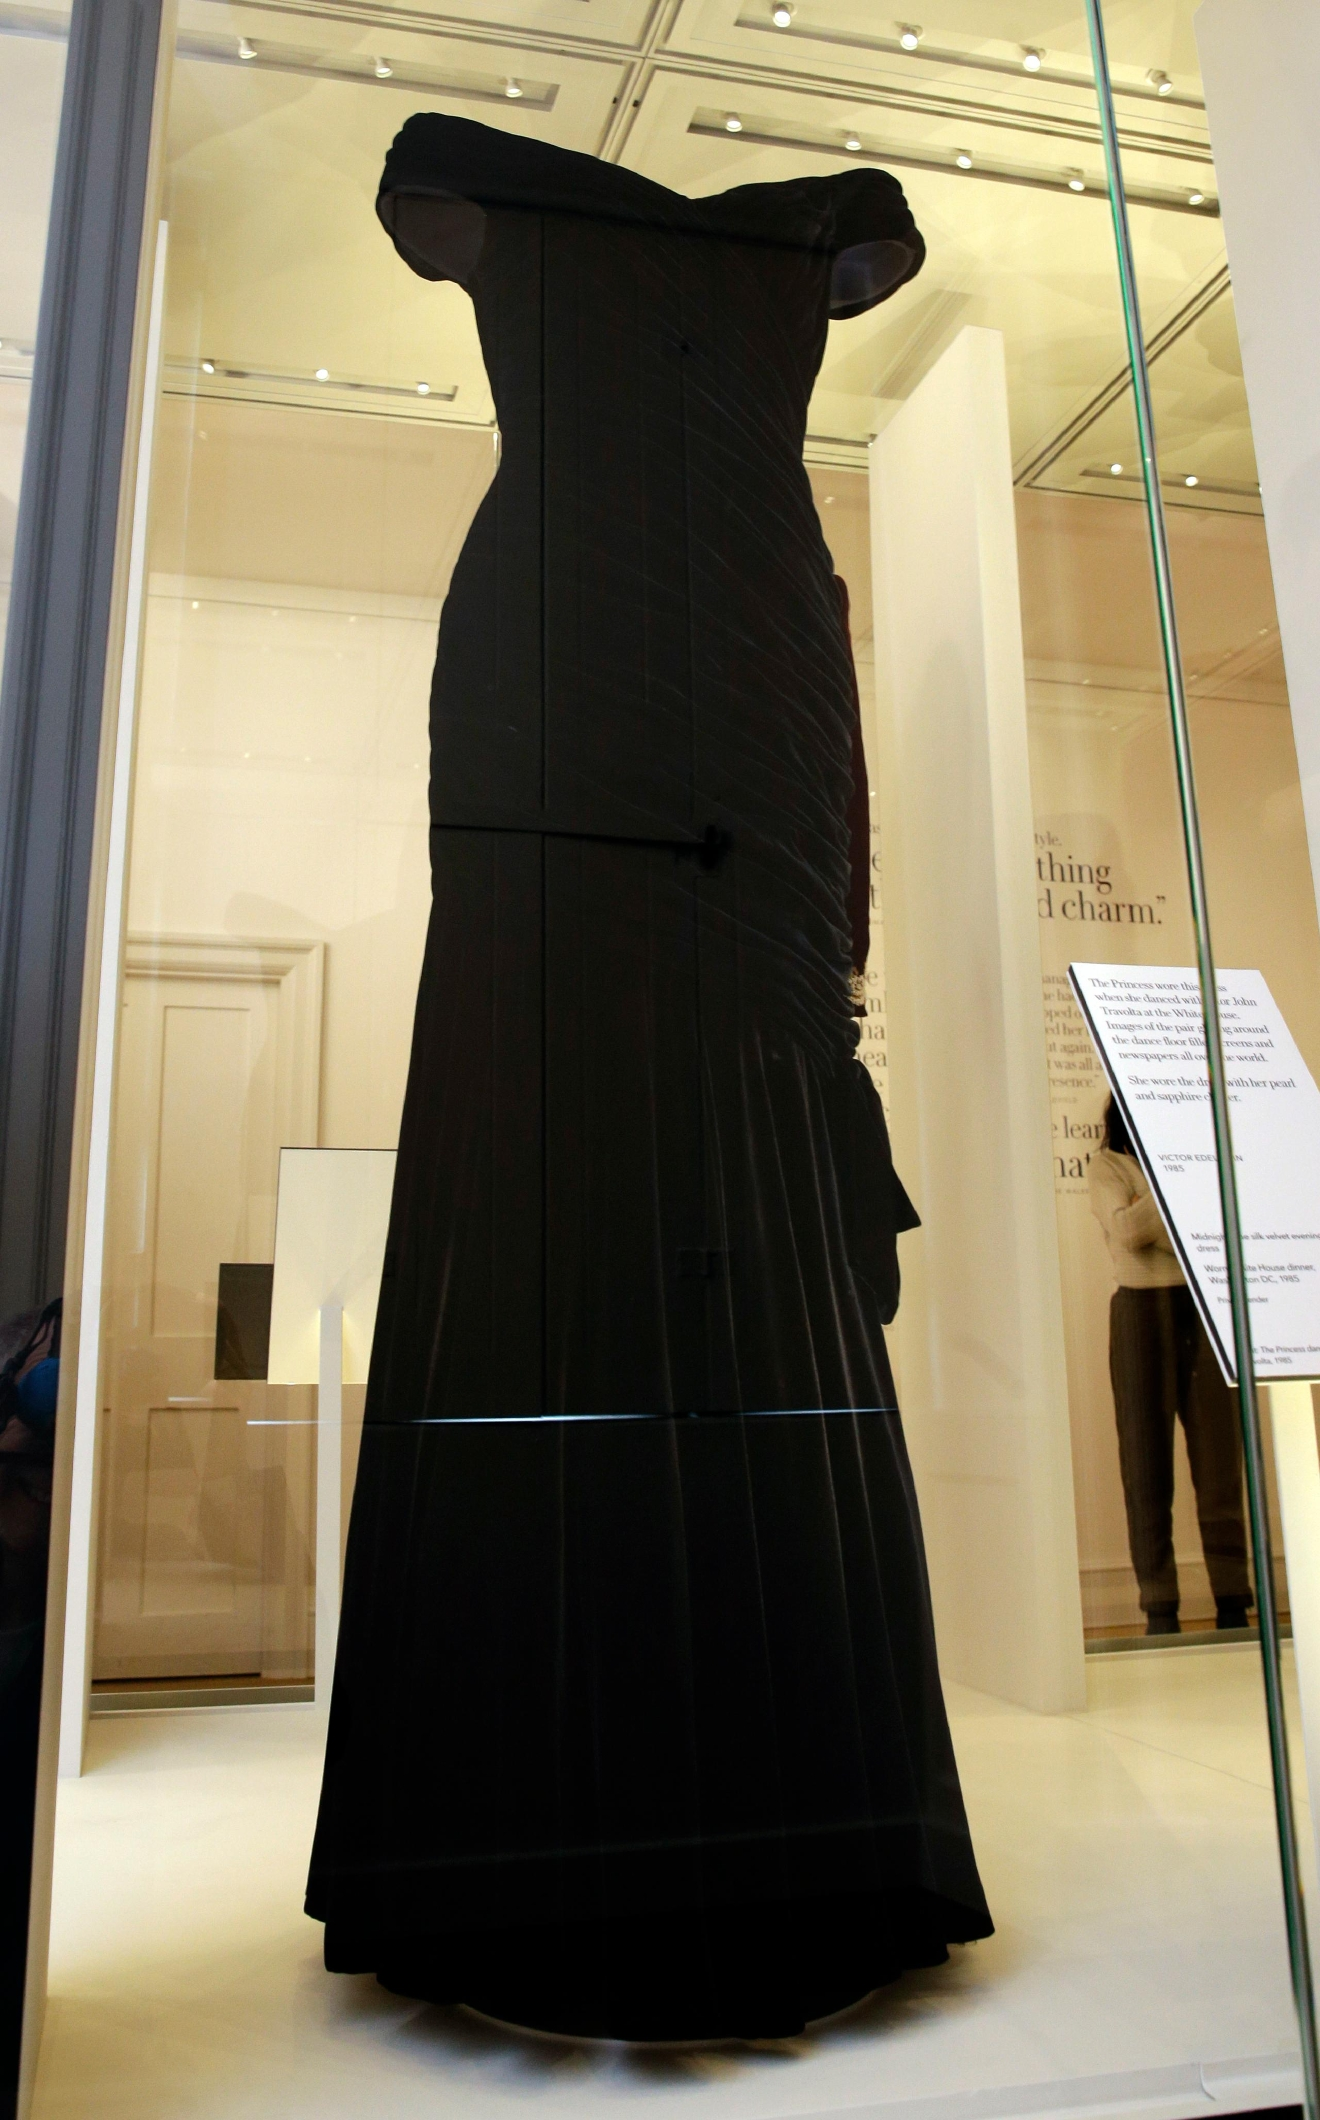 "A Victor Edelstein dress in midnight blue silk velvet, worn by Diana Princess of Wales at a State Dinner at the White House in 1985, on display during a media preview of an exhibition of 25 dresses and outfits worn by Diana, Princess of Wales entitled ""Diana: Her Fashion Story"" at Kensington Palace in London, Wednesday, Feb. 22, 2017. (AP Photo/Alastair Grant)"